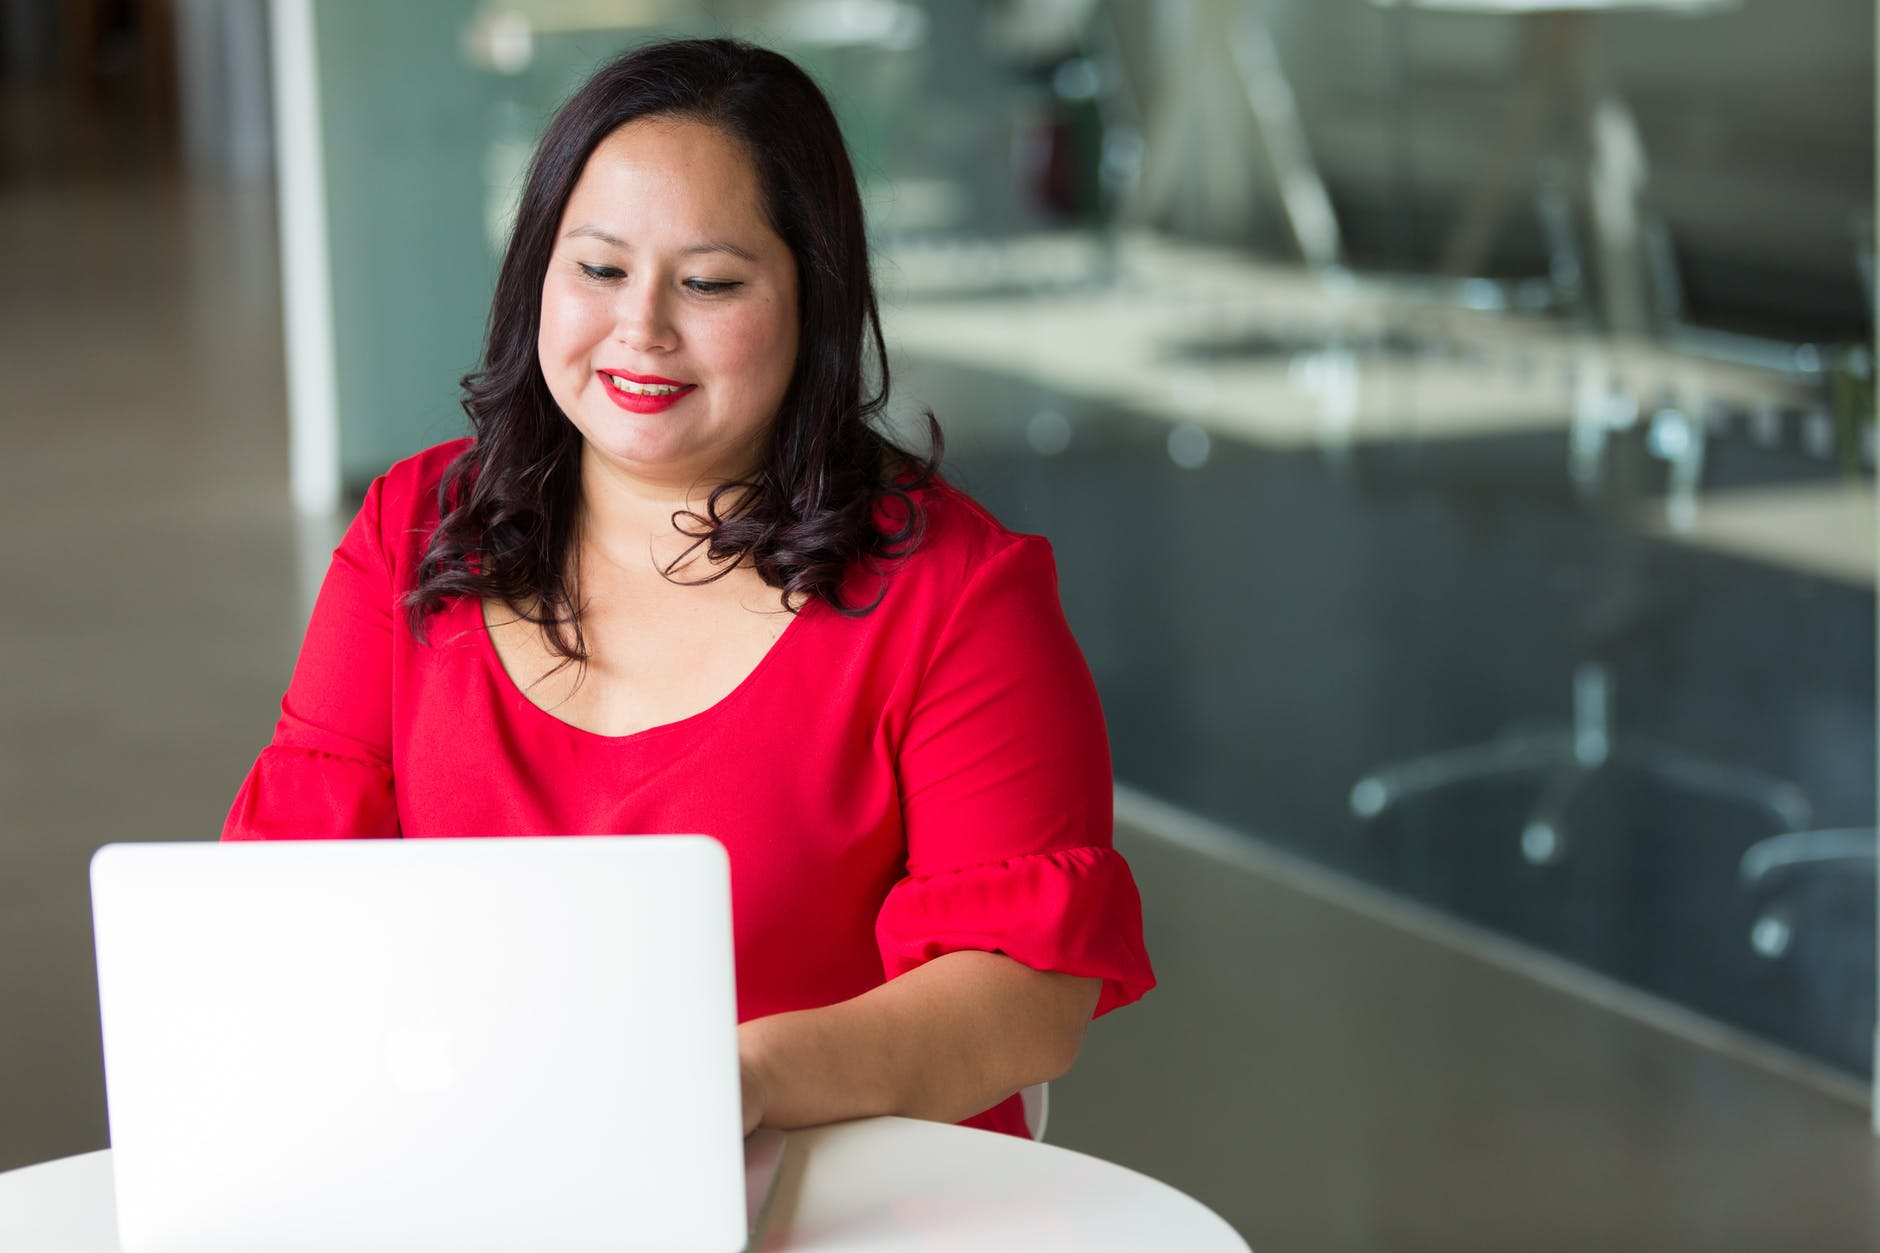 woman in a red shirt using a laptop